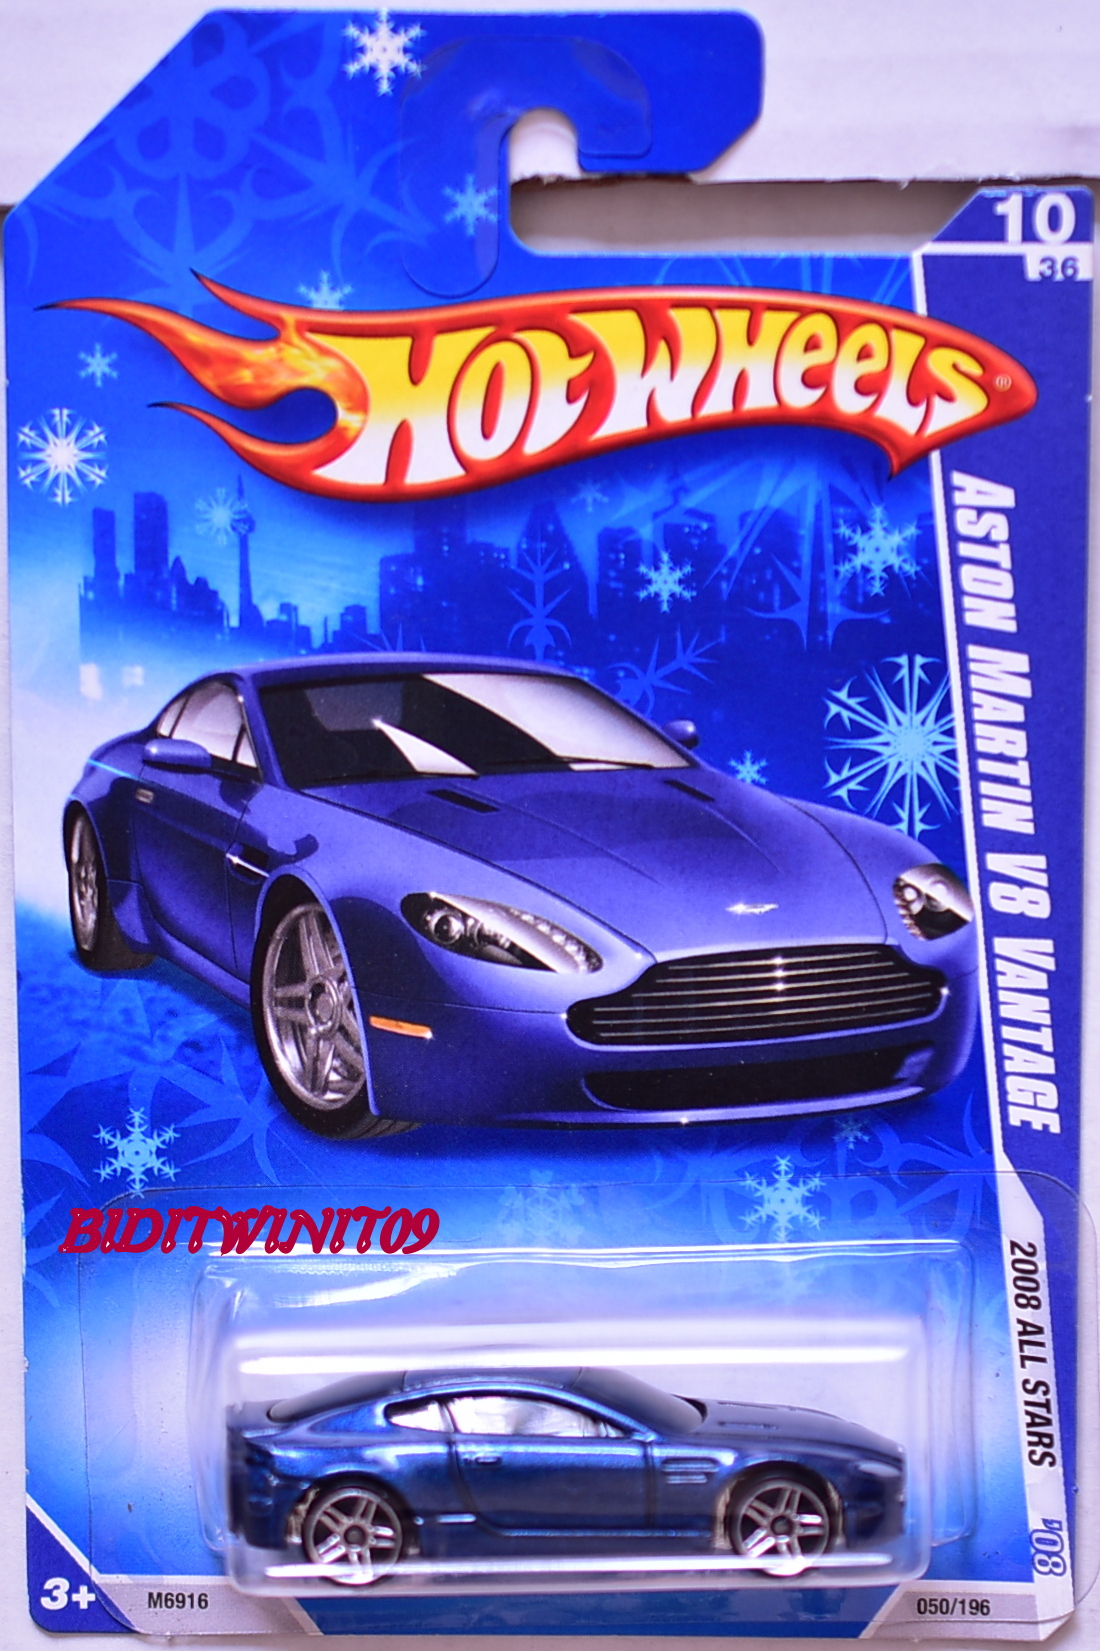 HOT WHEELS 2008 ALL STARS ASTON MARTIN V8 VANTAGE #10/36 BLUE SNOW CARD E+